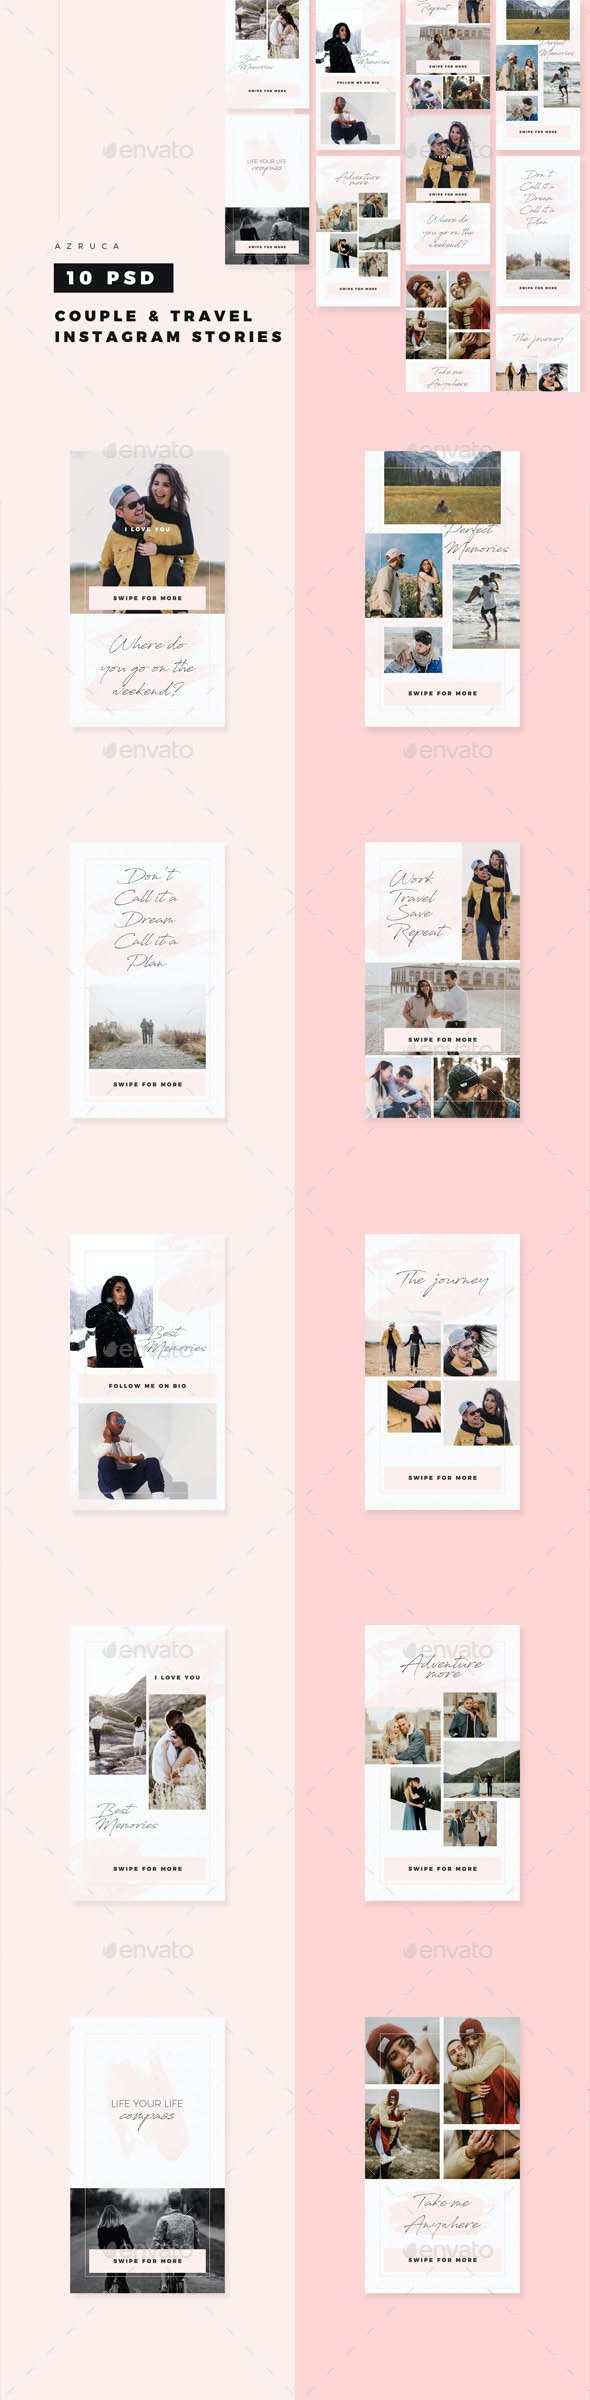 Couple & Travel Instagram Stories - Banners & Ads Web Elements